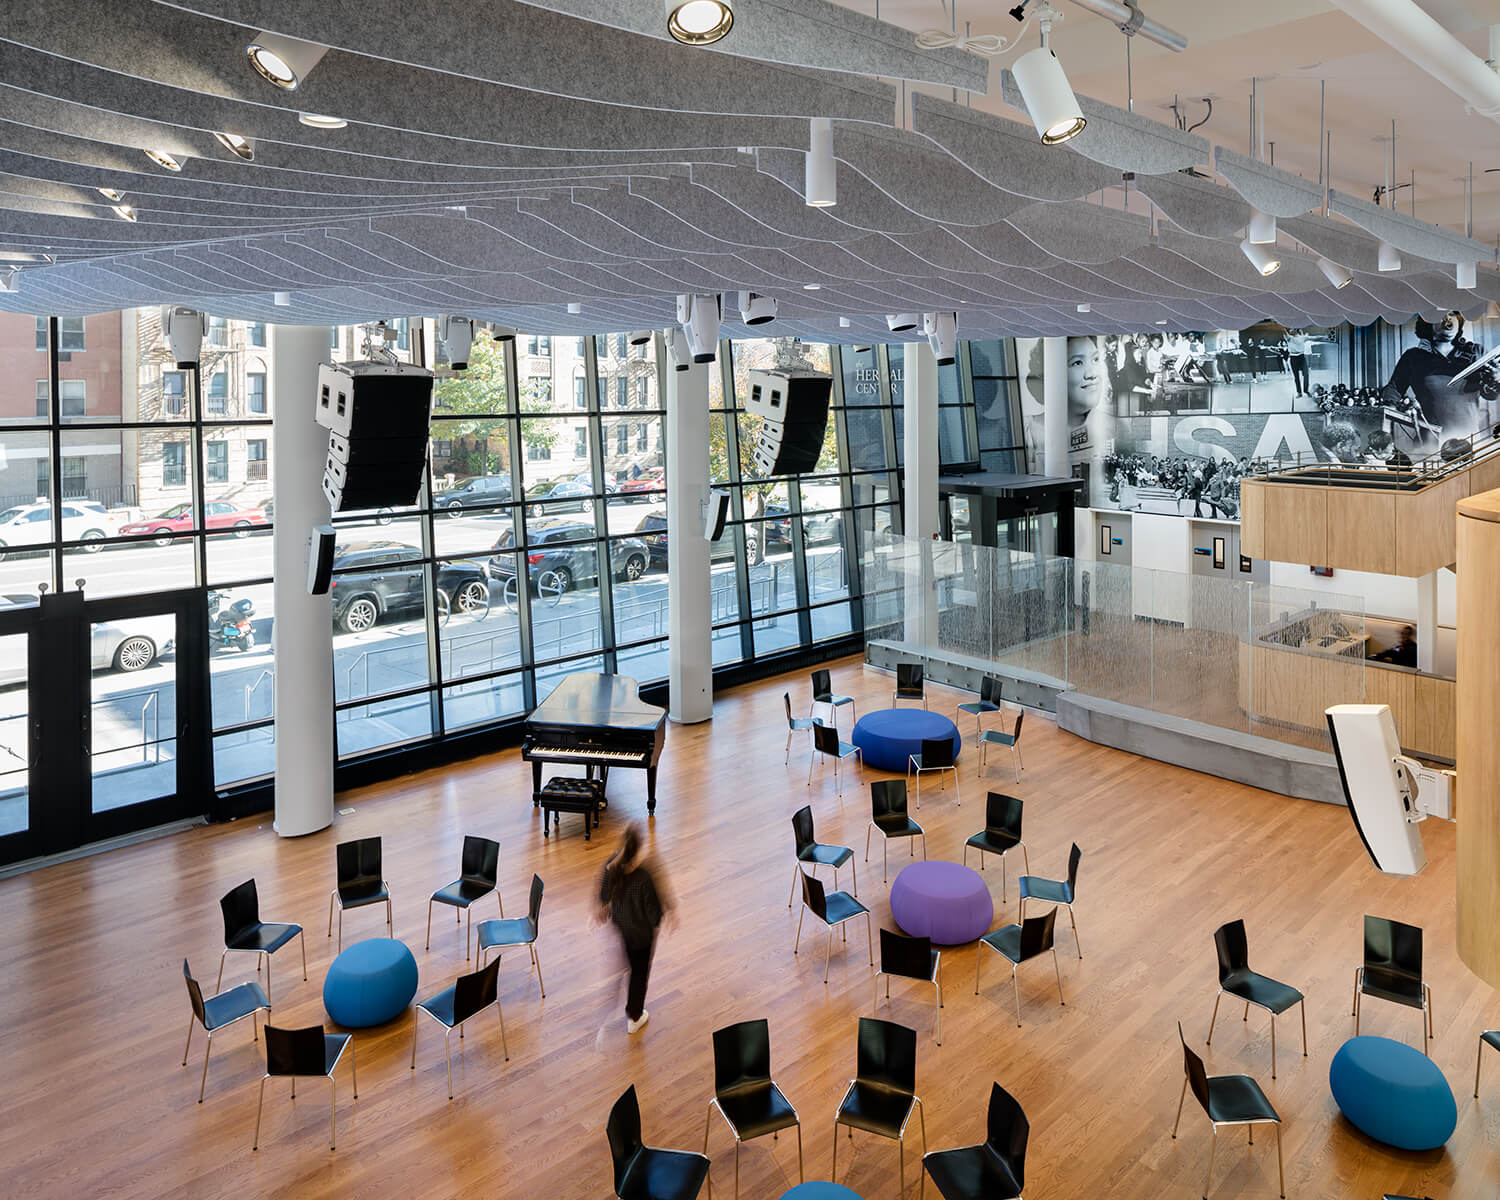 View of the building's atrium, showing the building's open concept seating space and the glass facade from the interior